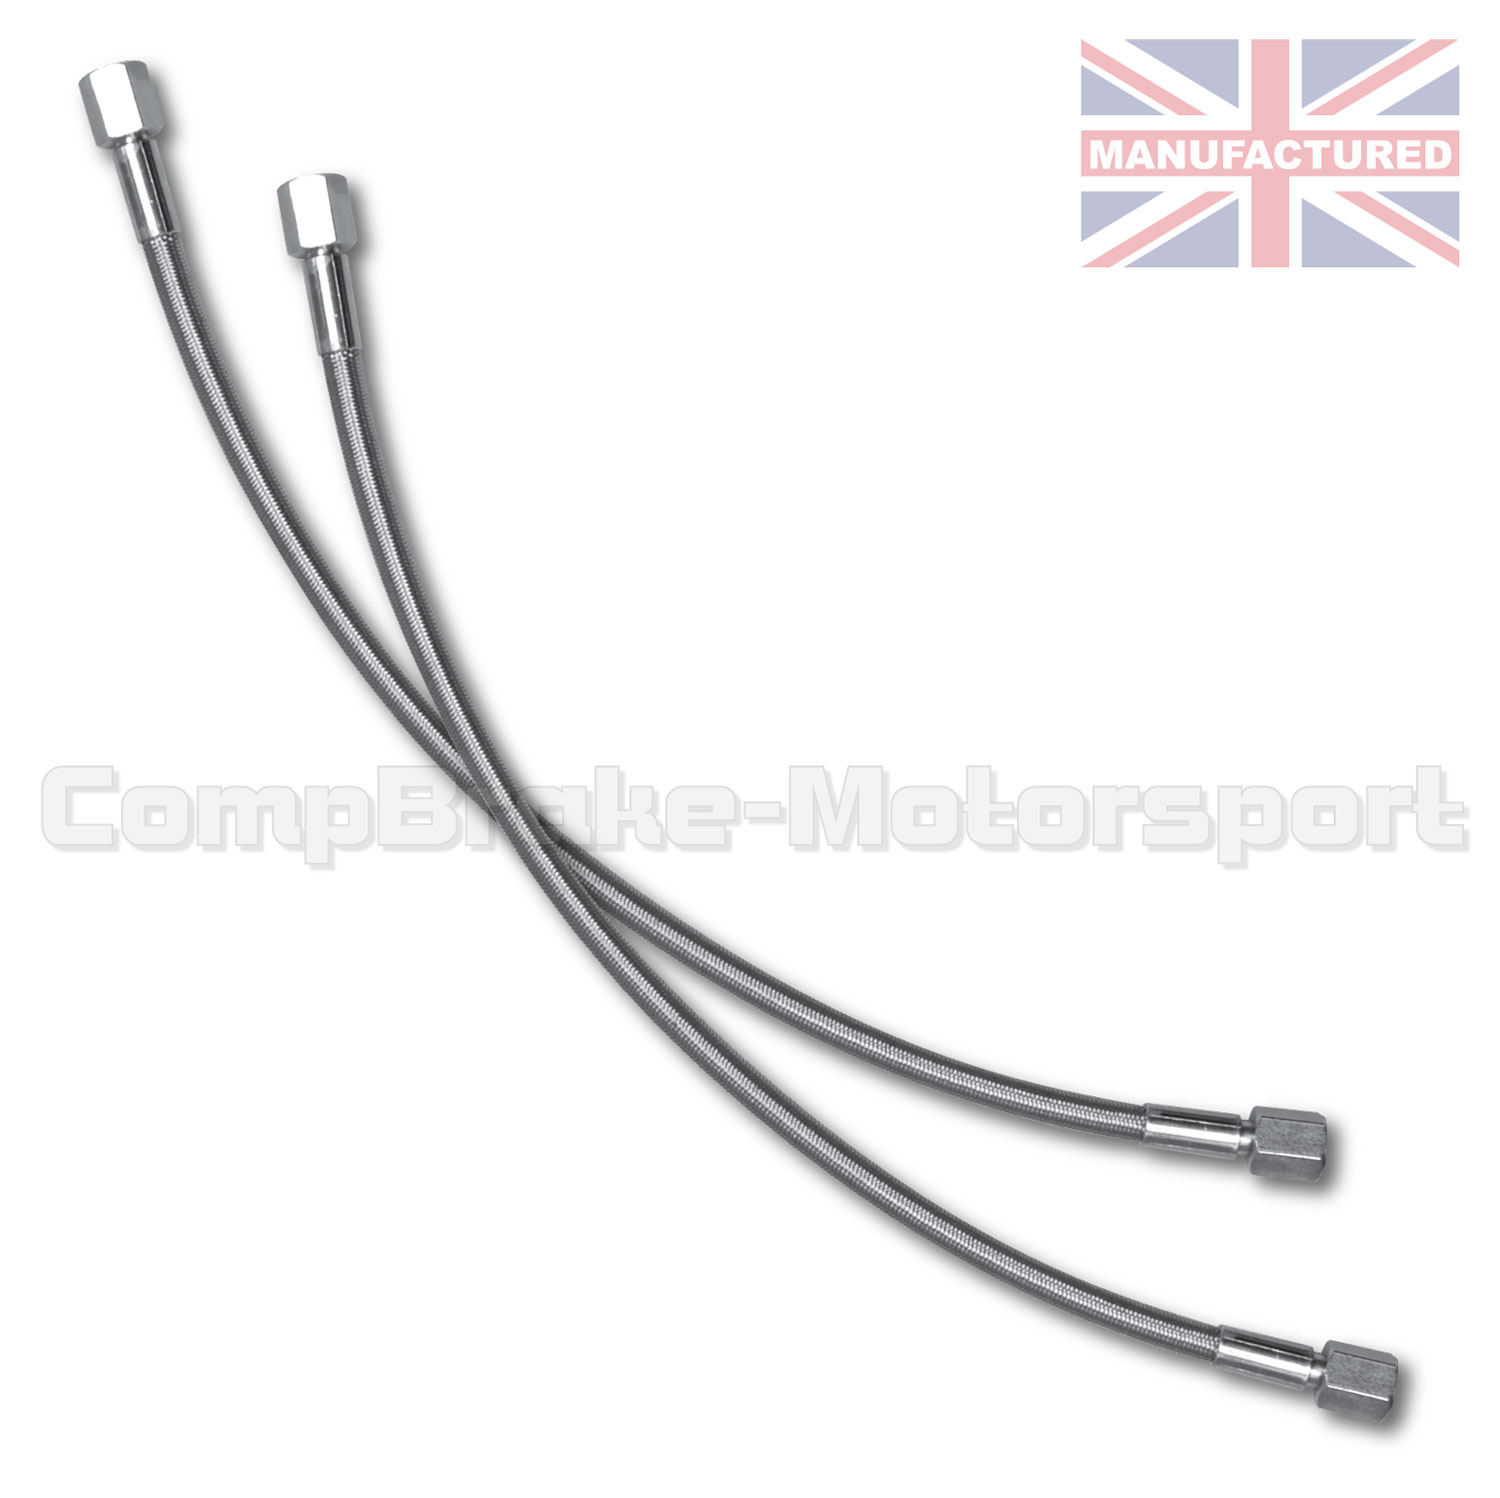 Ford Escort Sierra Cosworth Top Mounted Cable Pedal Box Kit Direct Repacement 2 Pedal Kit B